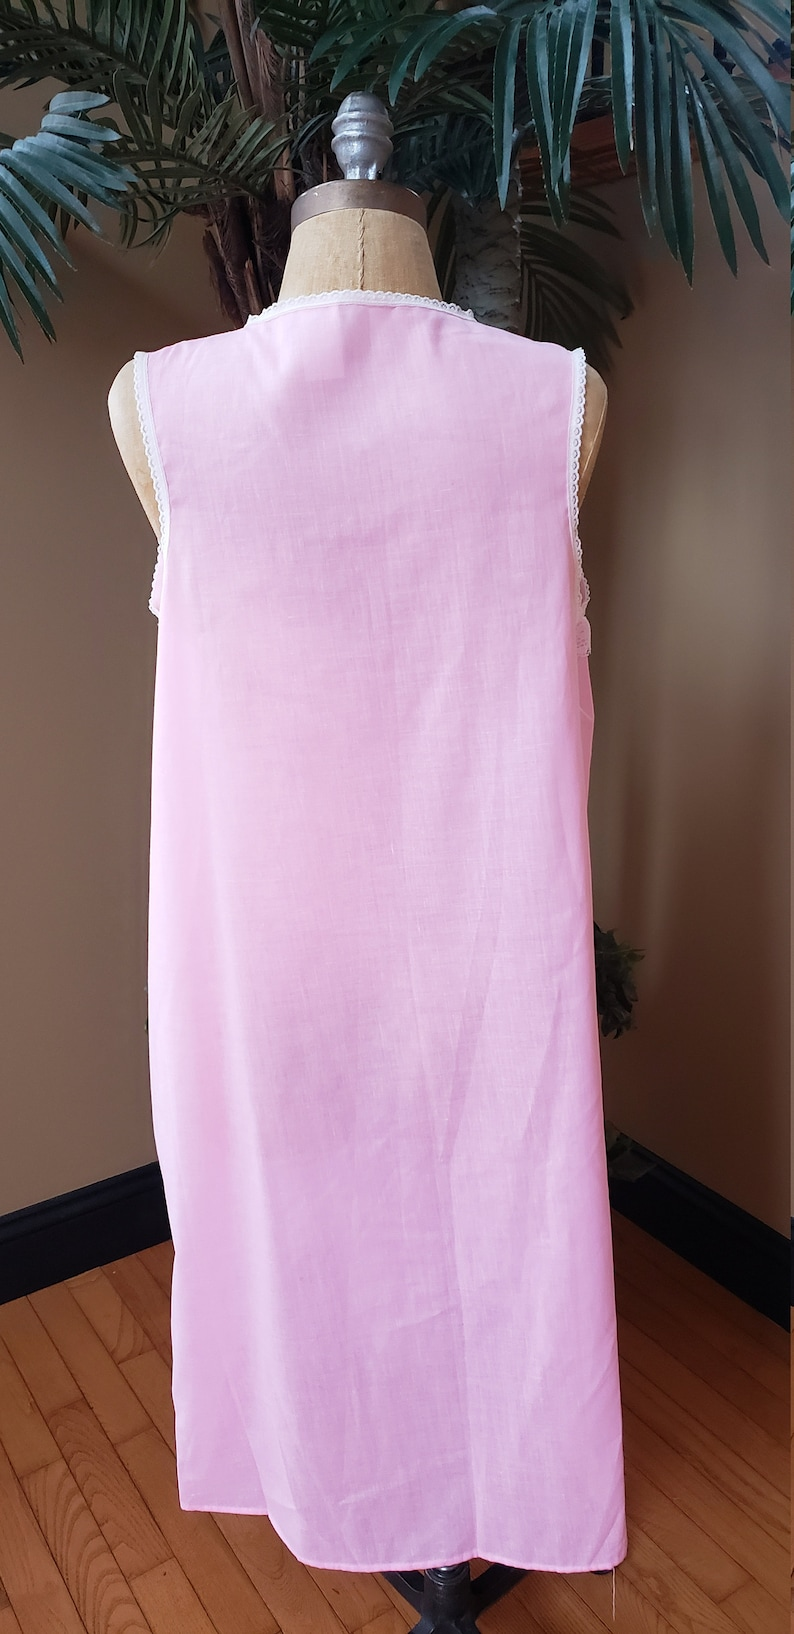 Vintage 70/'s Mistra Sleeveless PInk NIghtgown Gown /_Flowy Baby Doll Lingerie/_Fit Womens Small Medium Large S M L/_Romantic Feminine 3